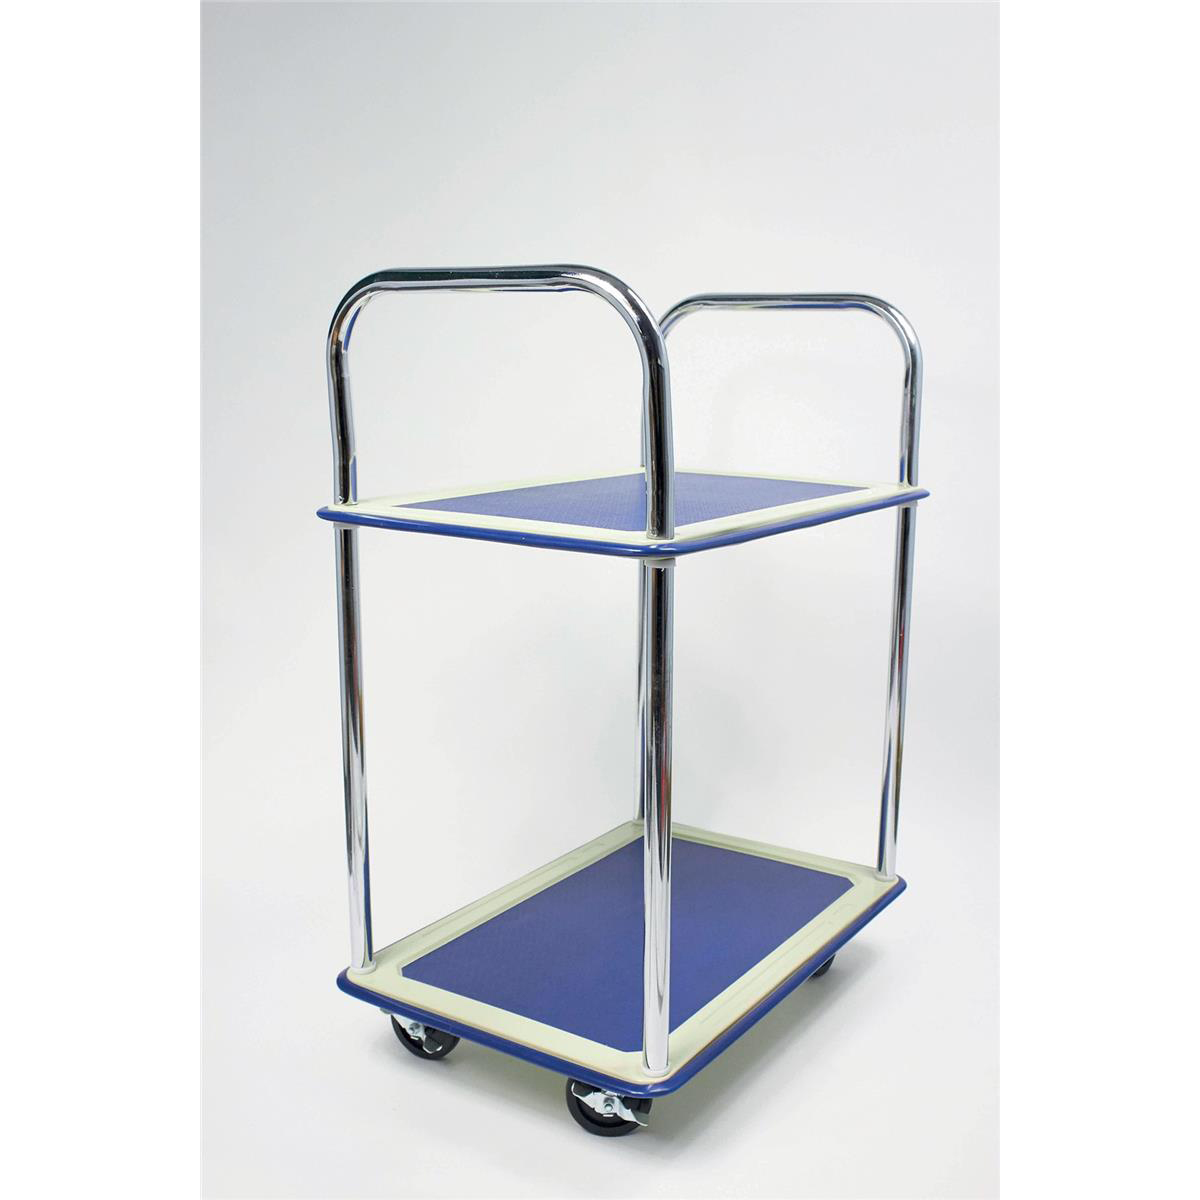 Trolleys or accessories 5 Star Facilities Trolley Lightweight Steel Frame 2 Shelf Capacity 120kg Chrome W470xD725xH950mm